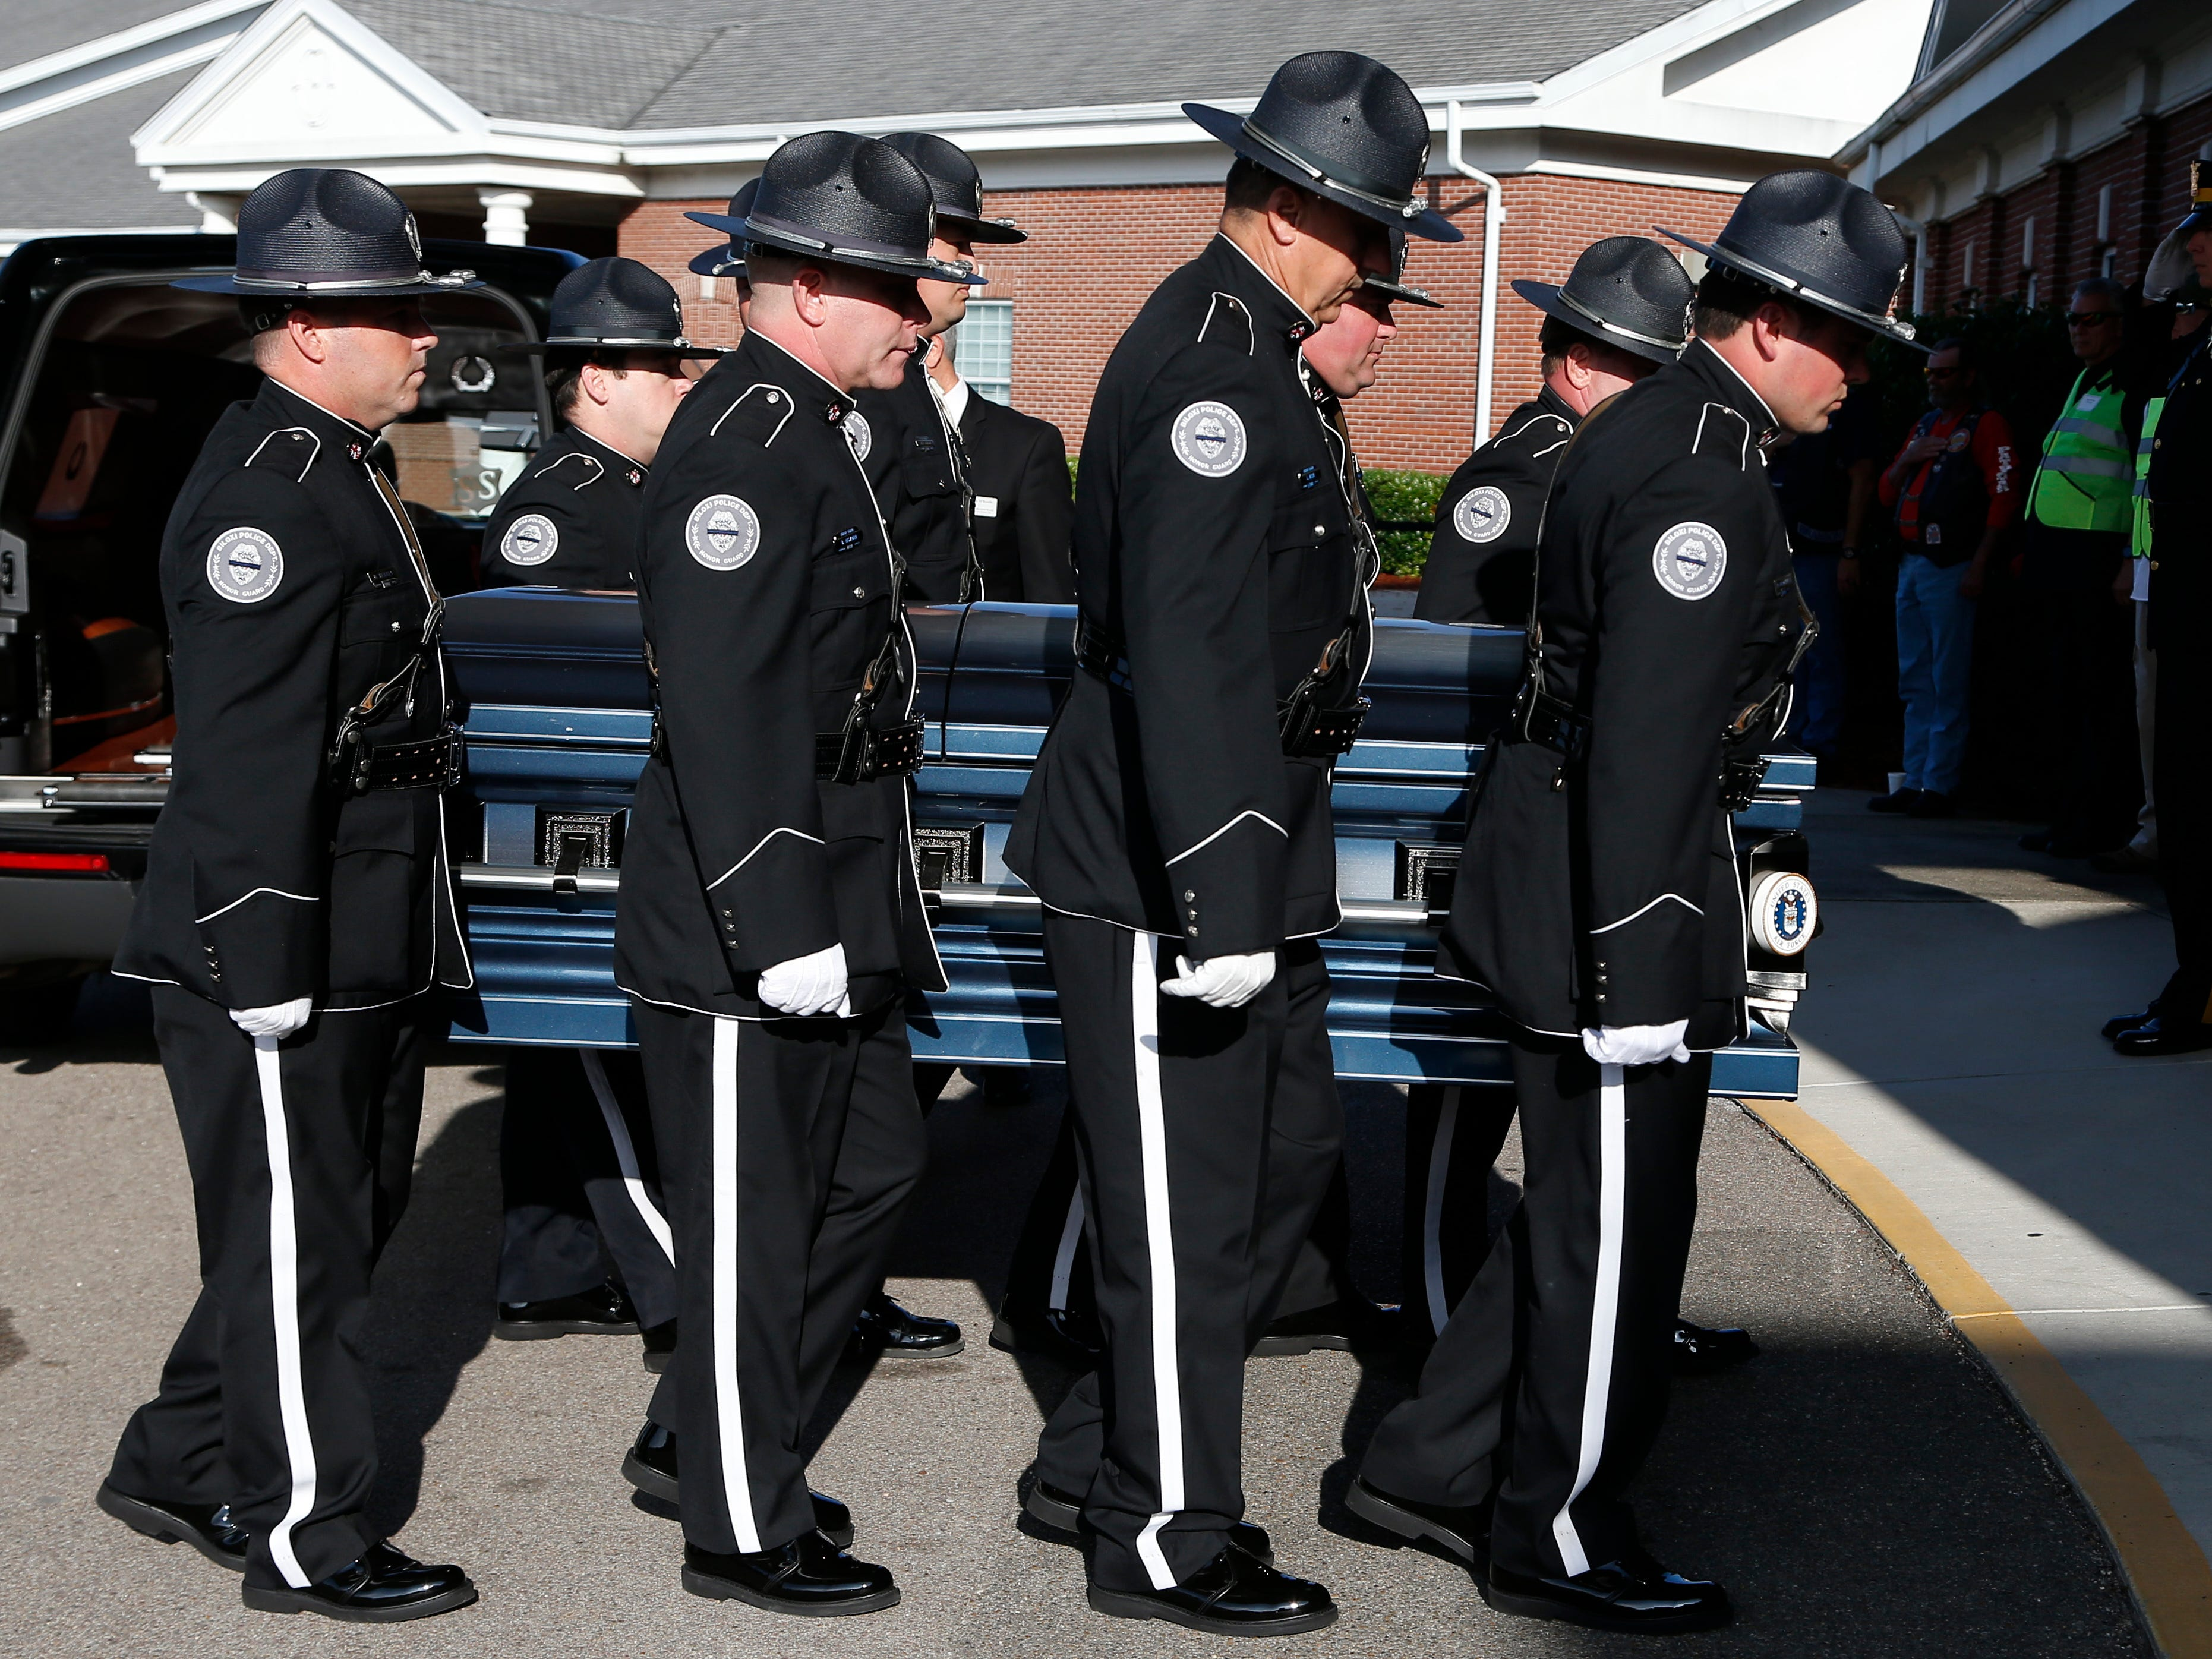 Members of the Biloxi Police Department Honor Guard escort the body of officer Robert McKeithen, into the First Baptist Church of Biloxi, Miss., Monday, May 13, 2019, for visitation. McKeithen was killed outside Biloxi's police station May 5.